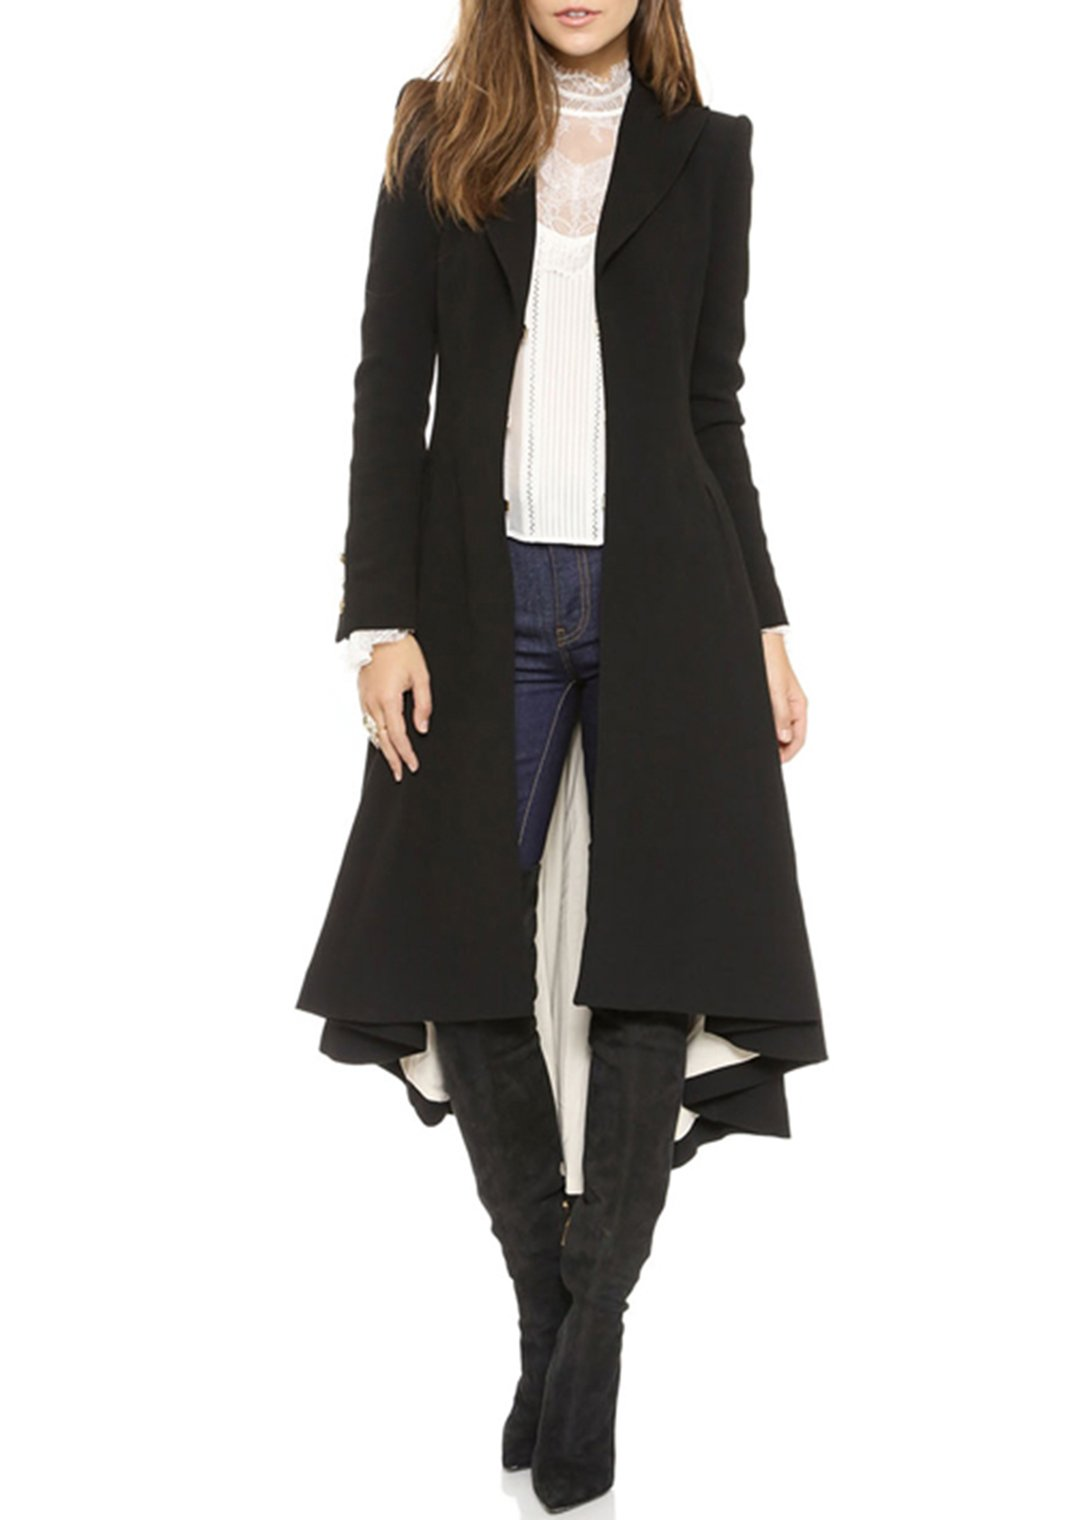 RICHKOKO Women Asymmetrical High Low V Neck Ruffle Button Long Coat(XL,Black)